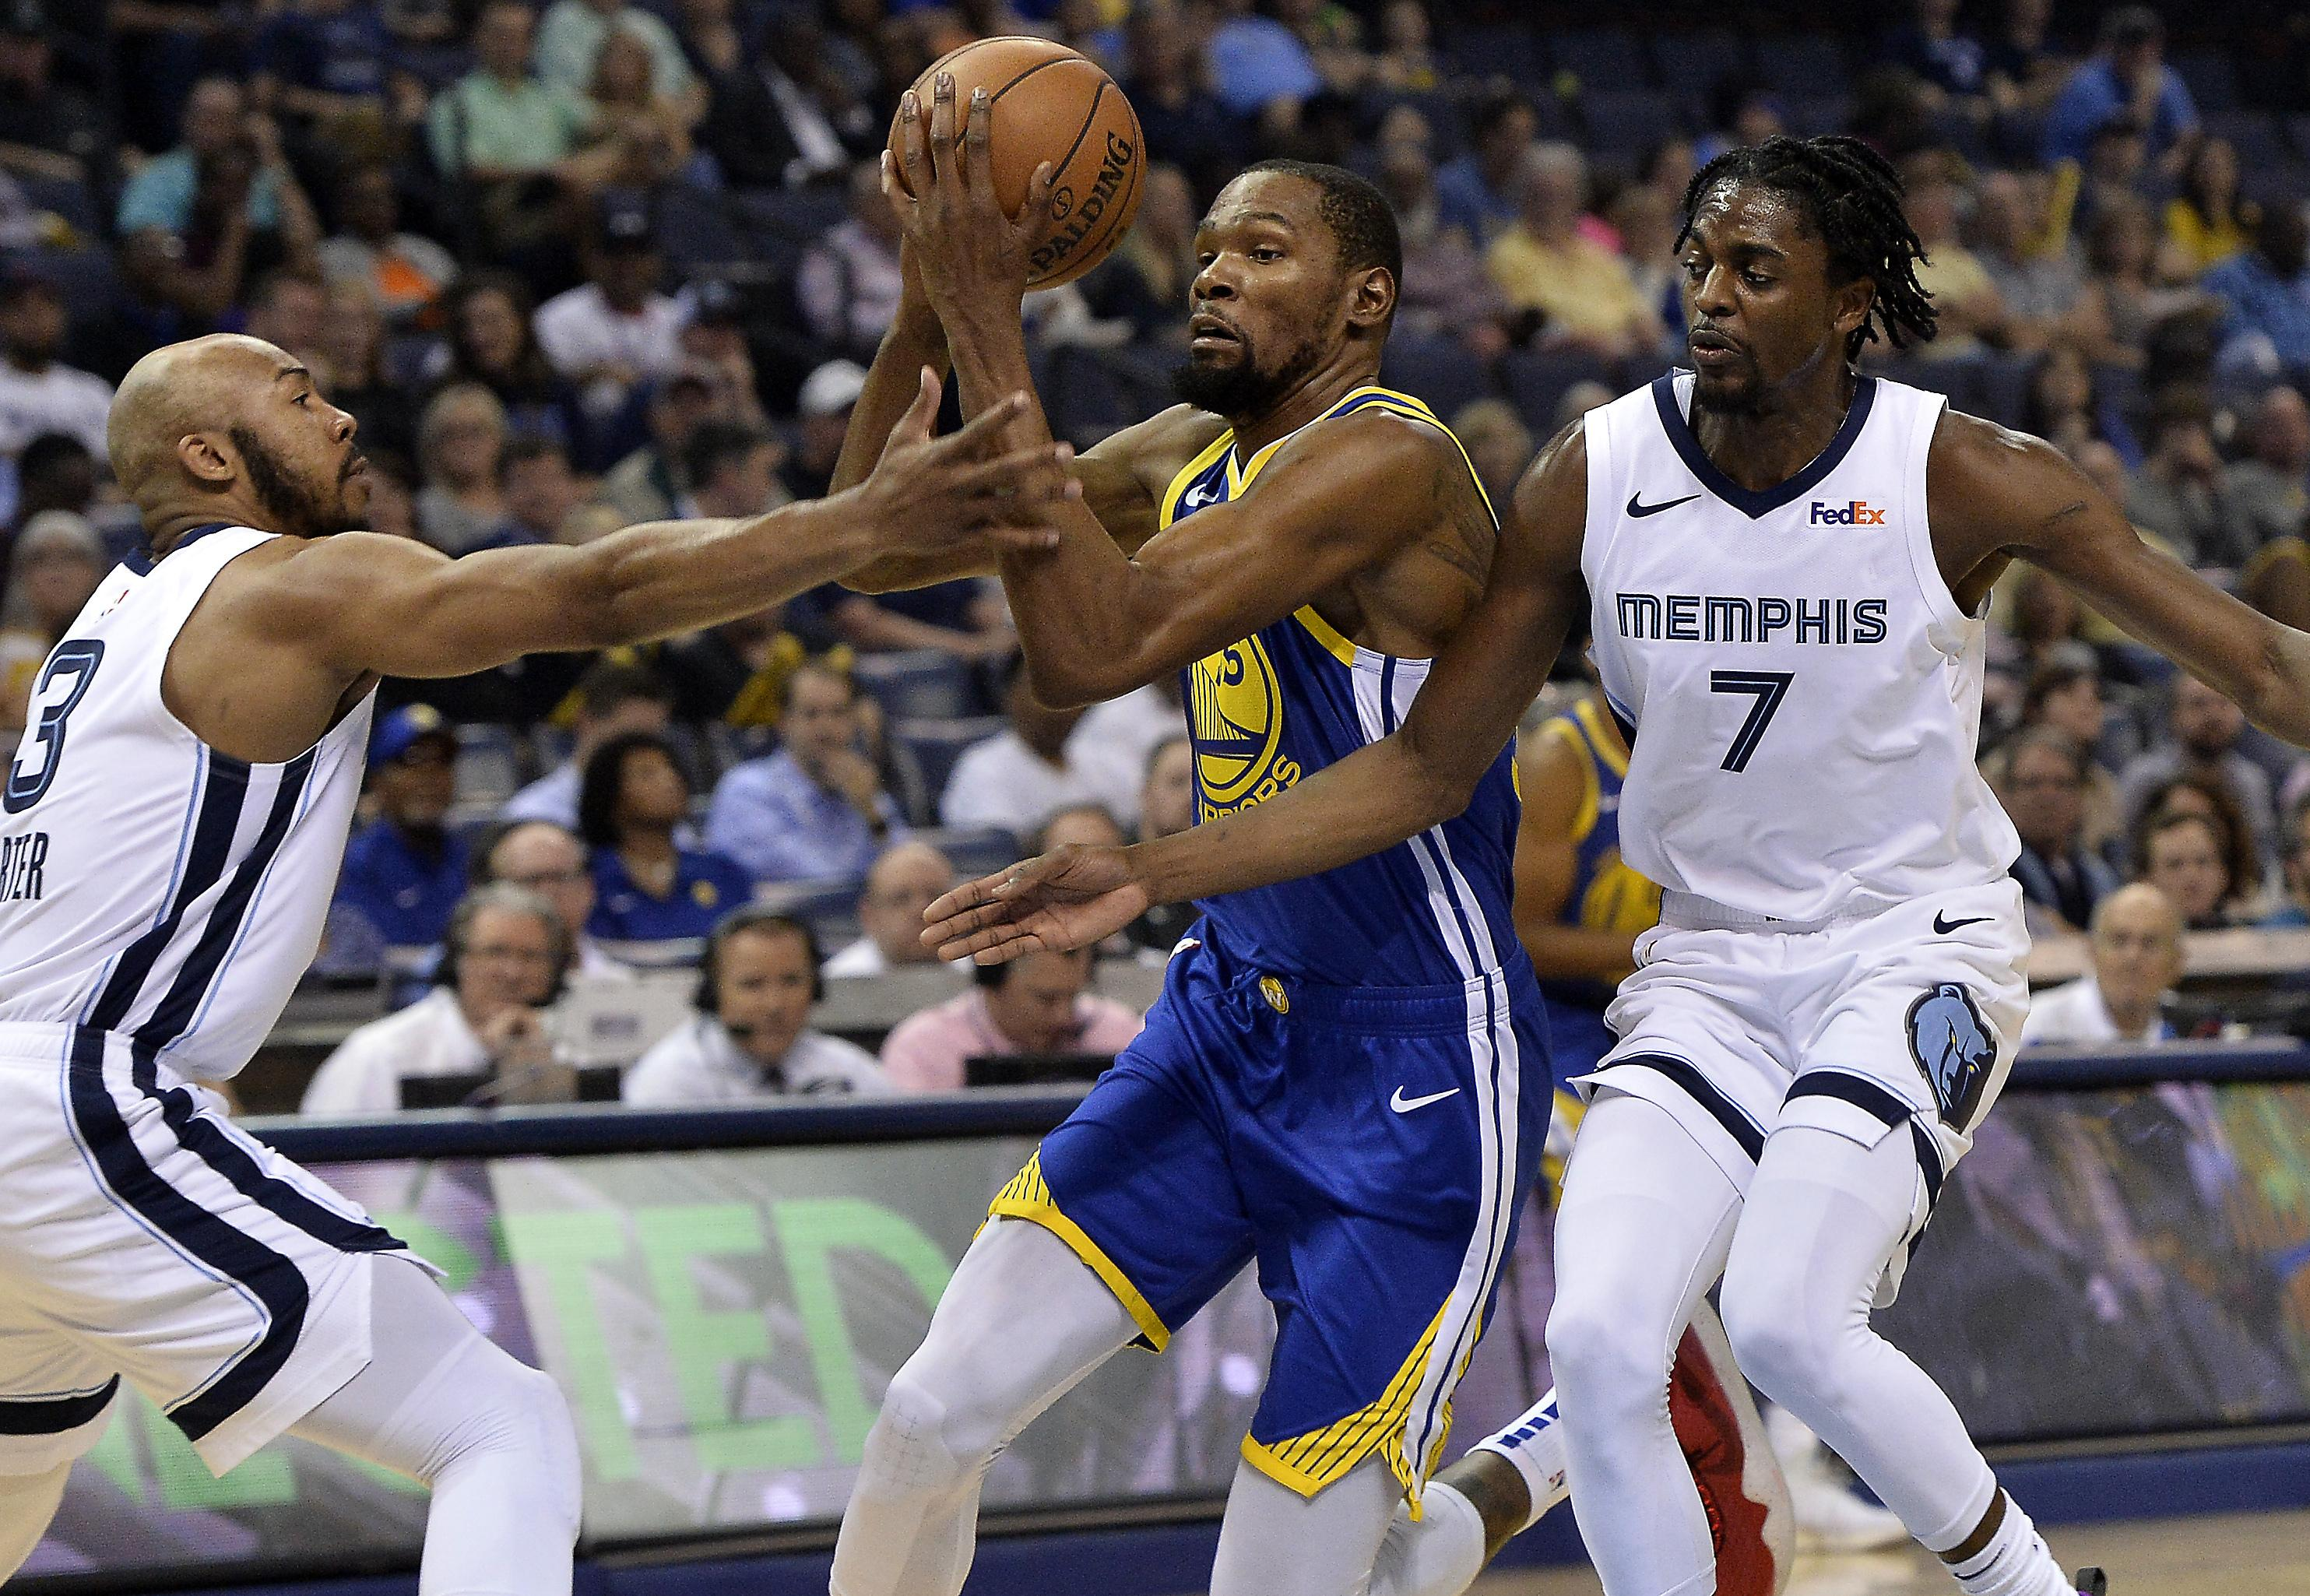 wholesale dealer 0e662 433d6 The field is set: NBA matchups for 2019 playoffs finalized ...